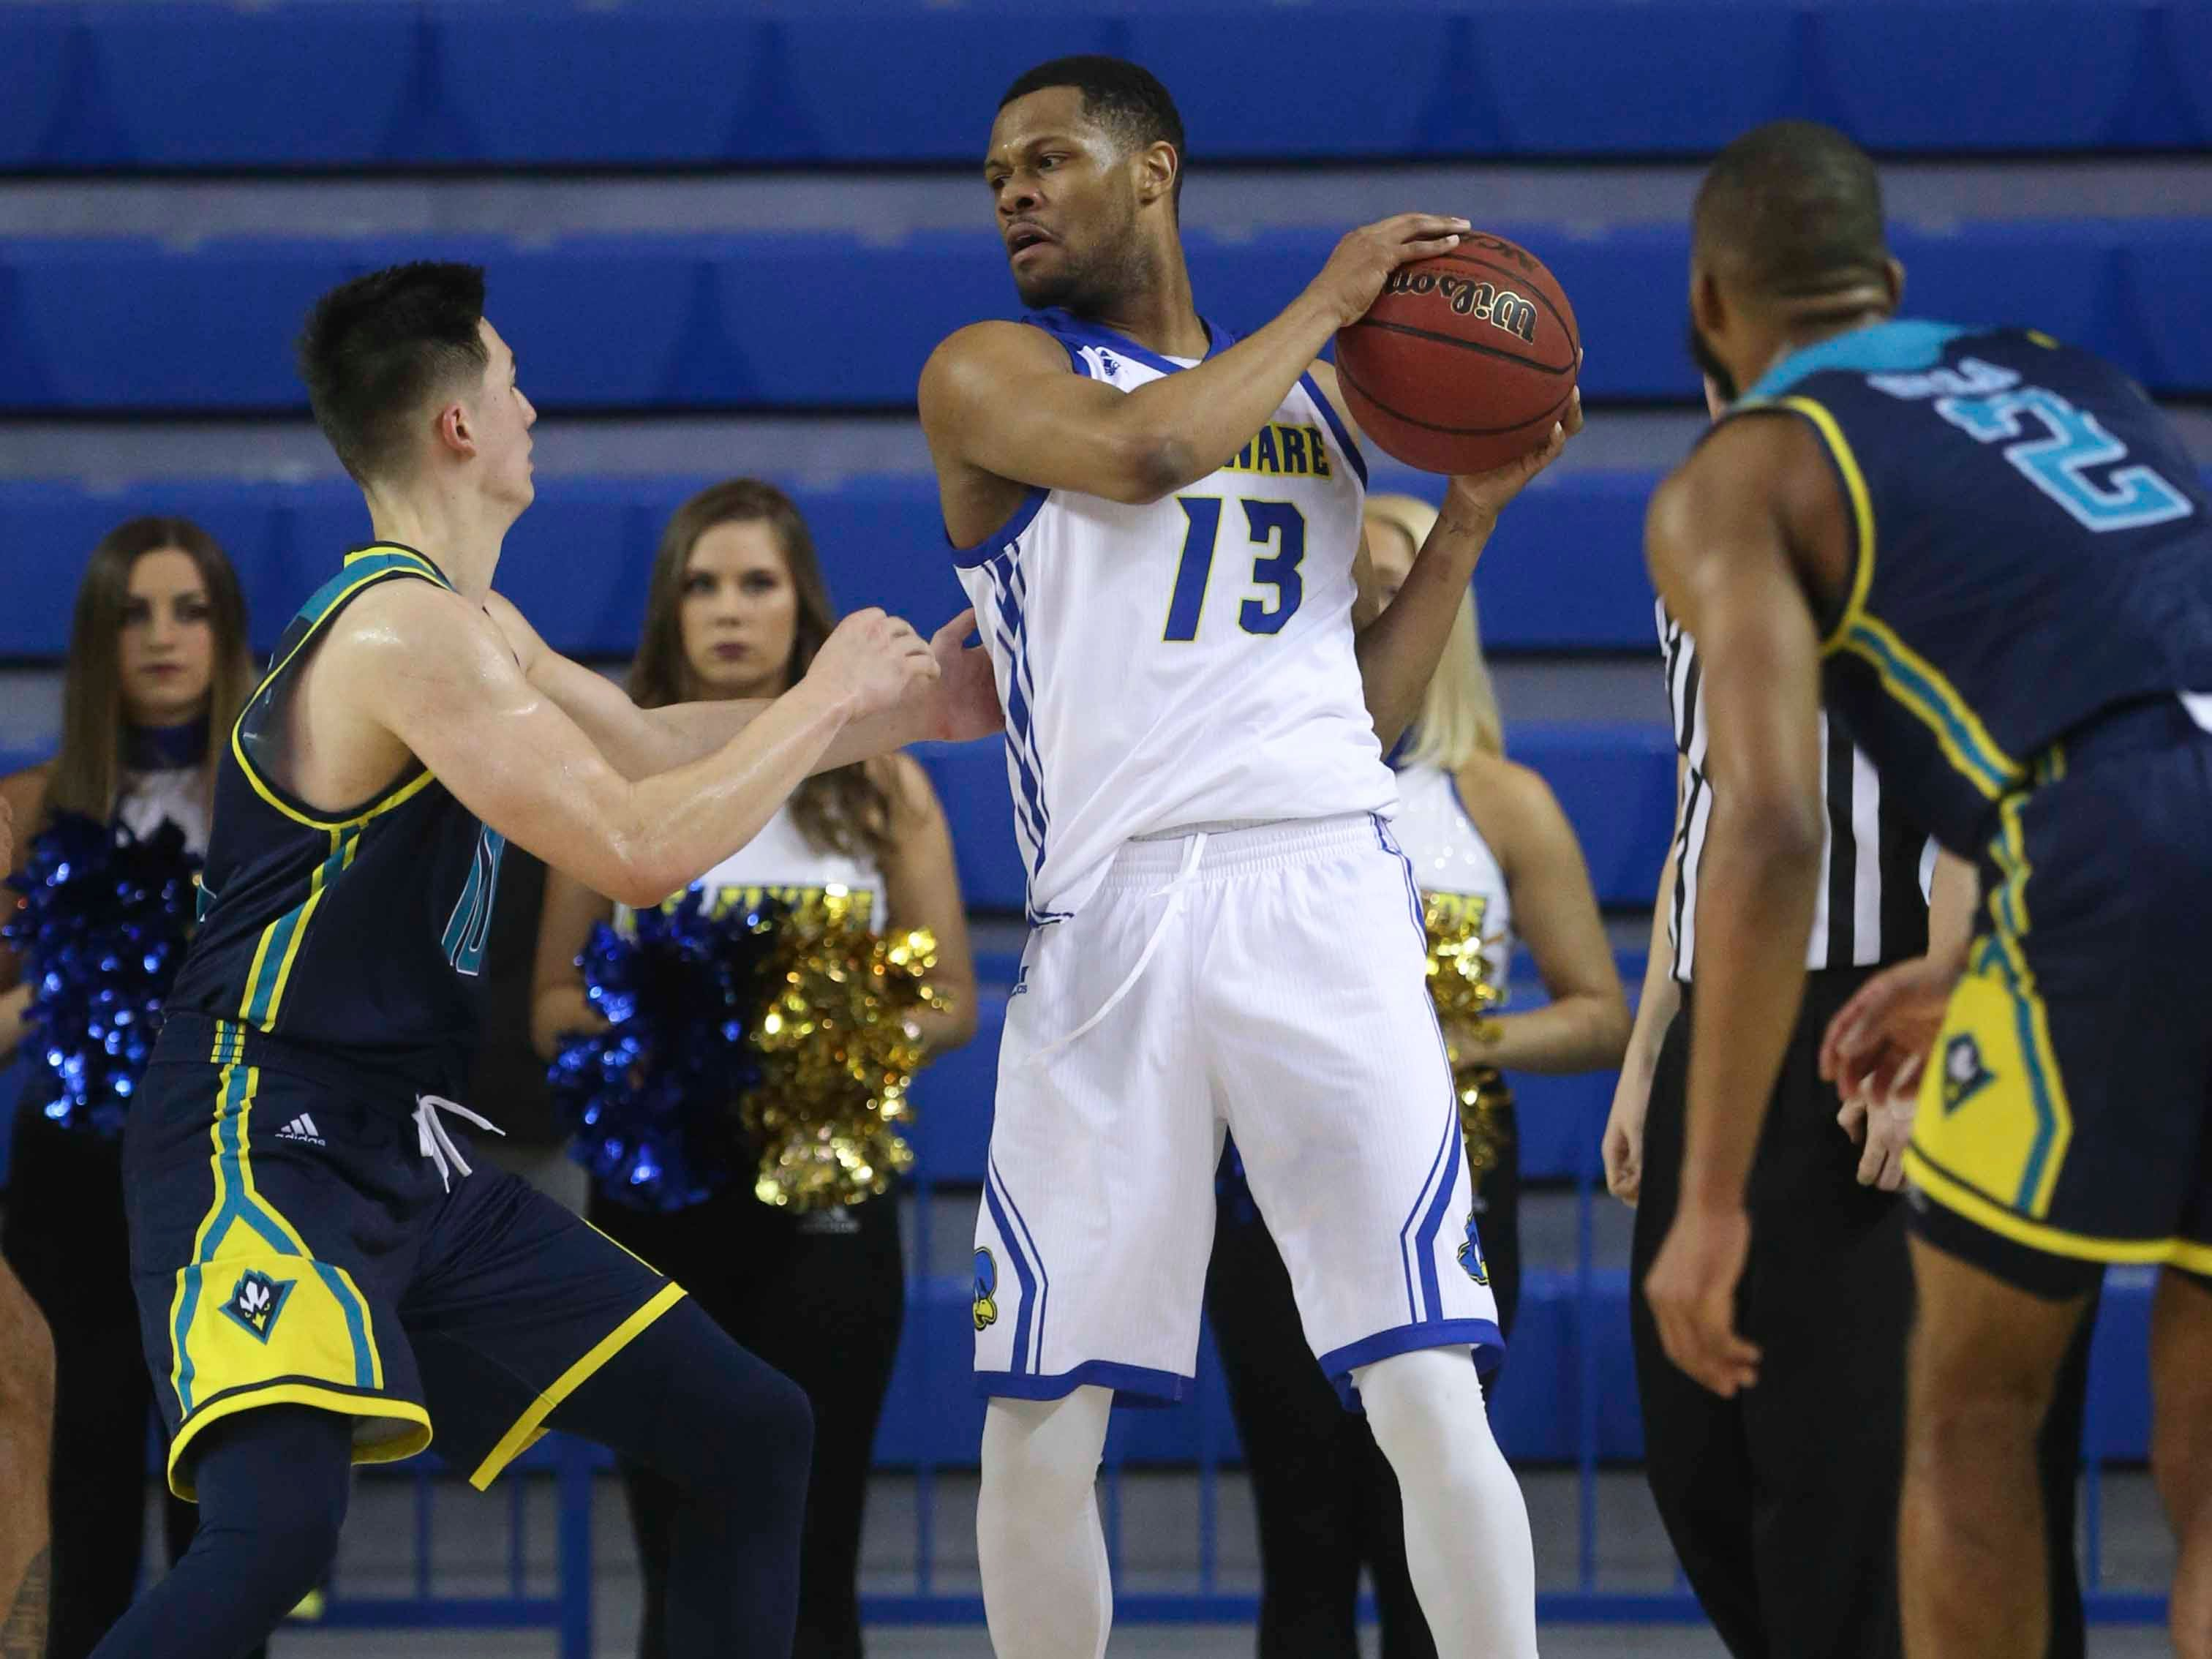 Delaware's Ryan Johnson keeps possession in the final minute as he is defended by UNC-Wilmington's Kai Toews and Jeantal Cylla in the second half of Delaware's 70-66 win at the Bob Carpenter Center Saturday.